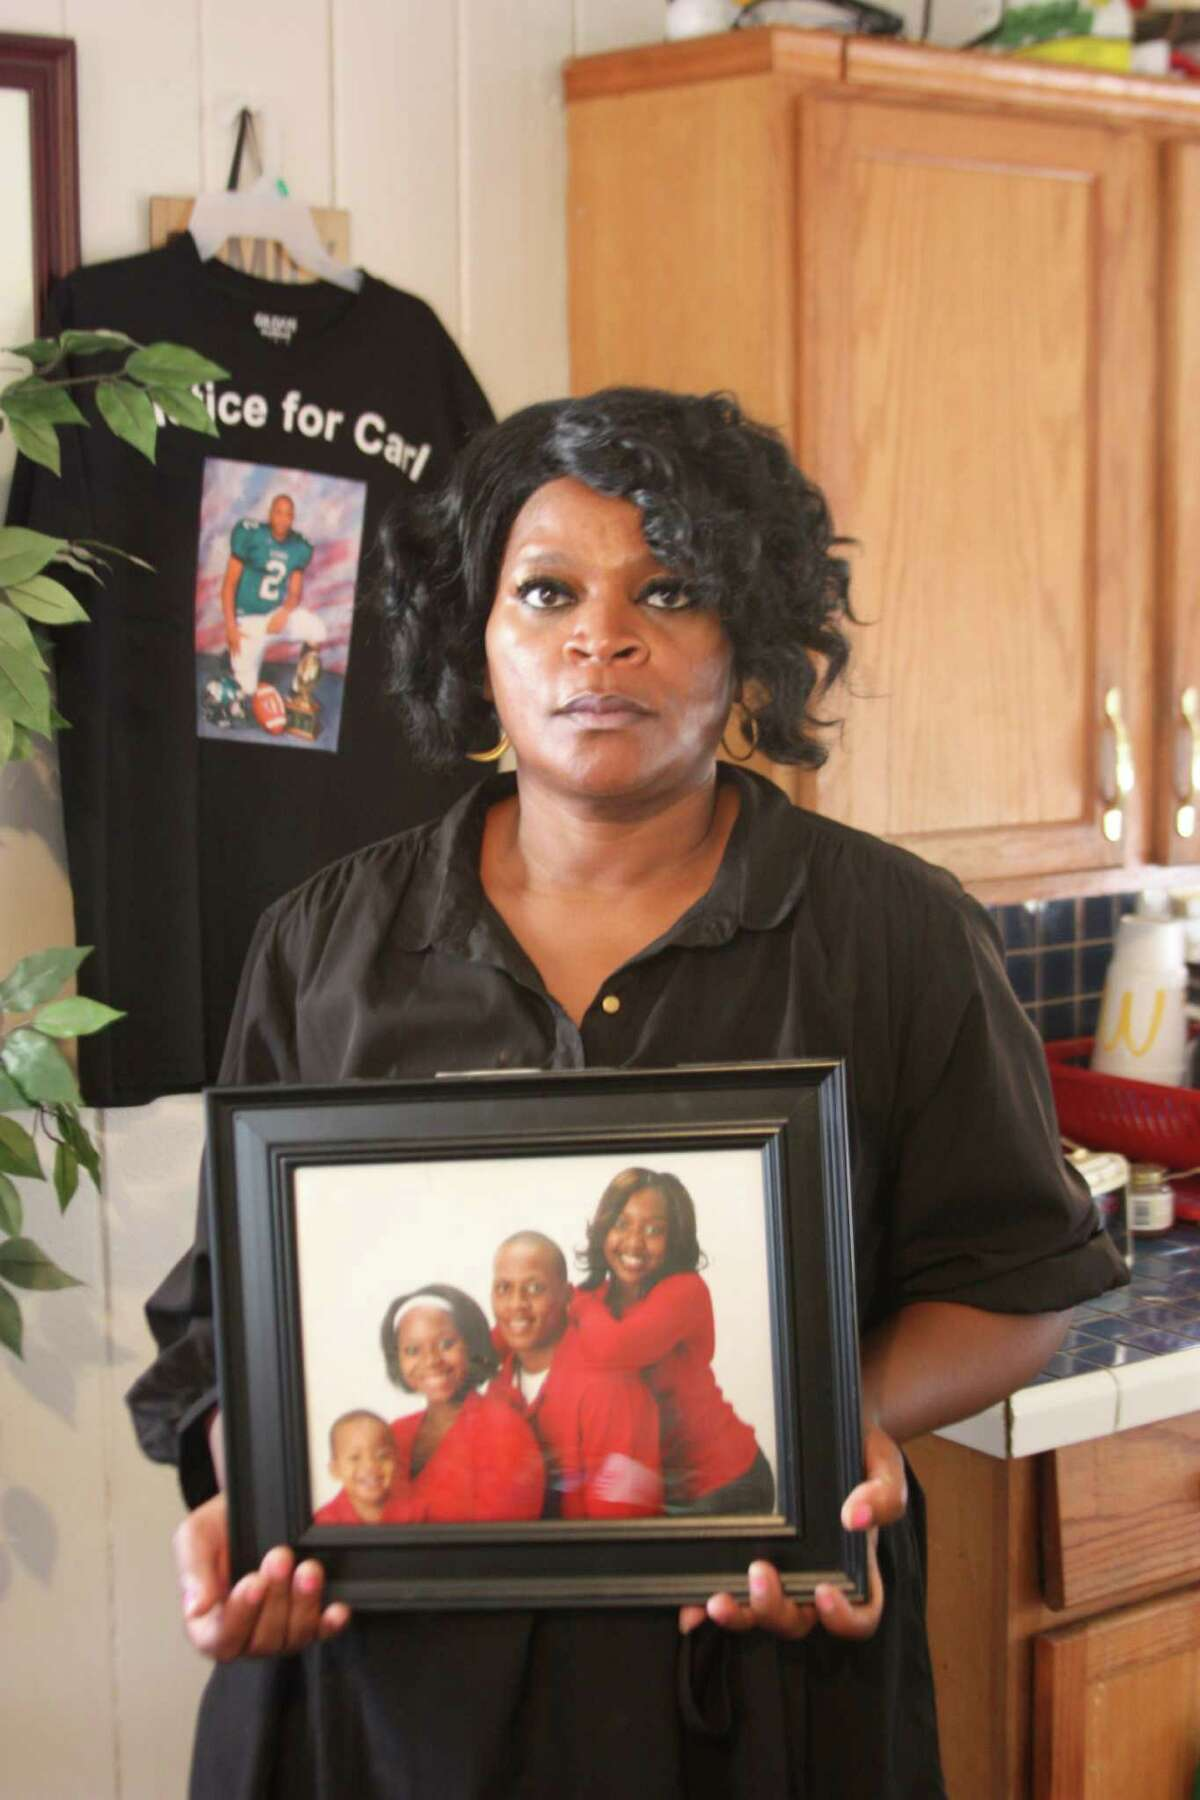 Rhonda Wills holds up a photo of her family from happier times. Five years ago, her son Carl, 22, was murdered and his body was dumped on a rural road in Liberty County. The murder remains unsolved.